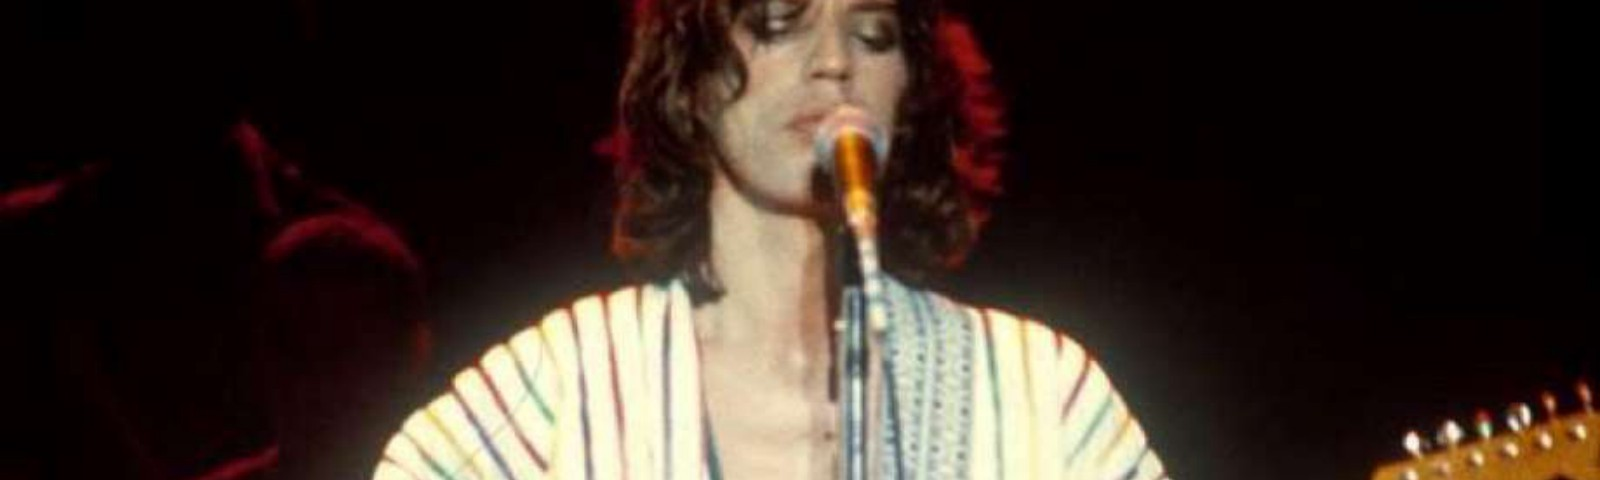 http://www.mysanantonio.com/entertainment/music-stage/article/Never-before-seen-photos-of-Rolling-Stones-on-11017668.php